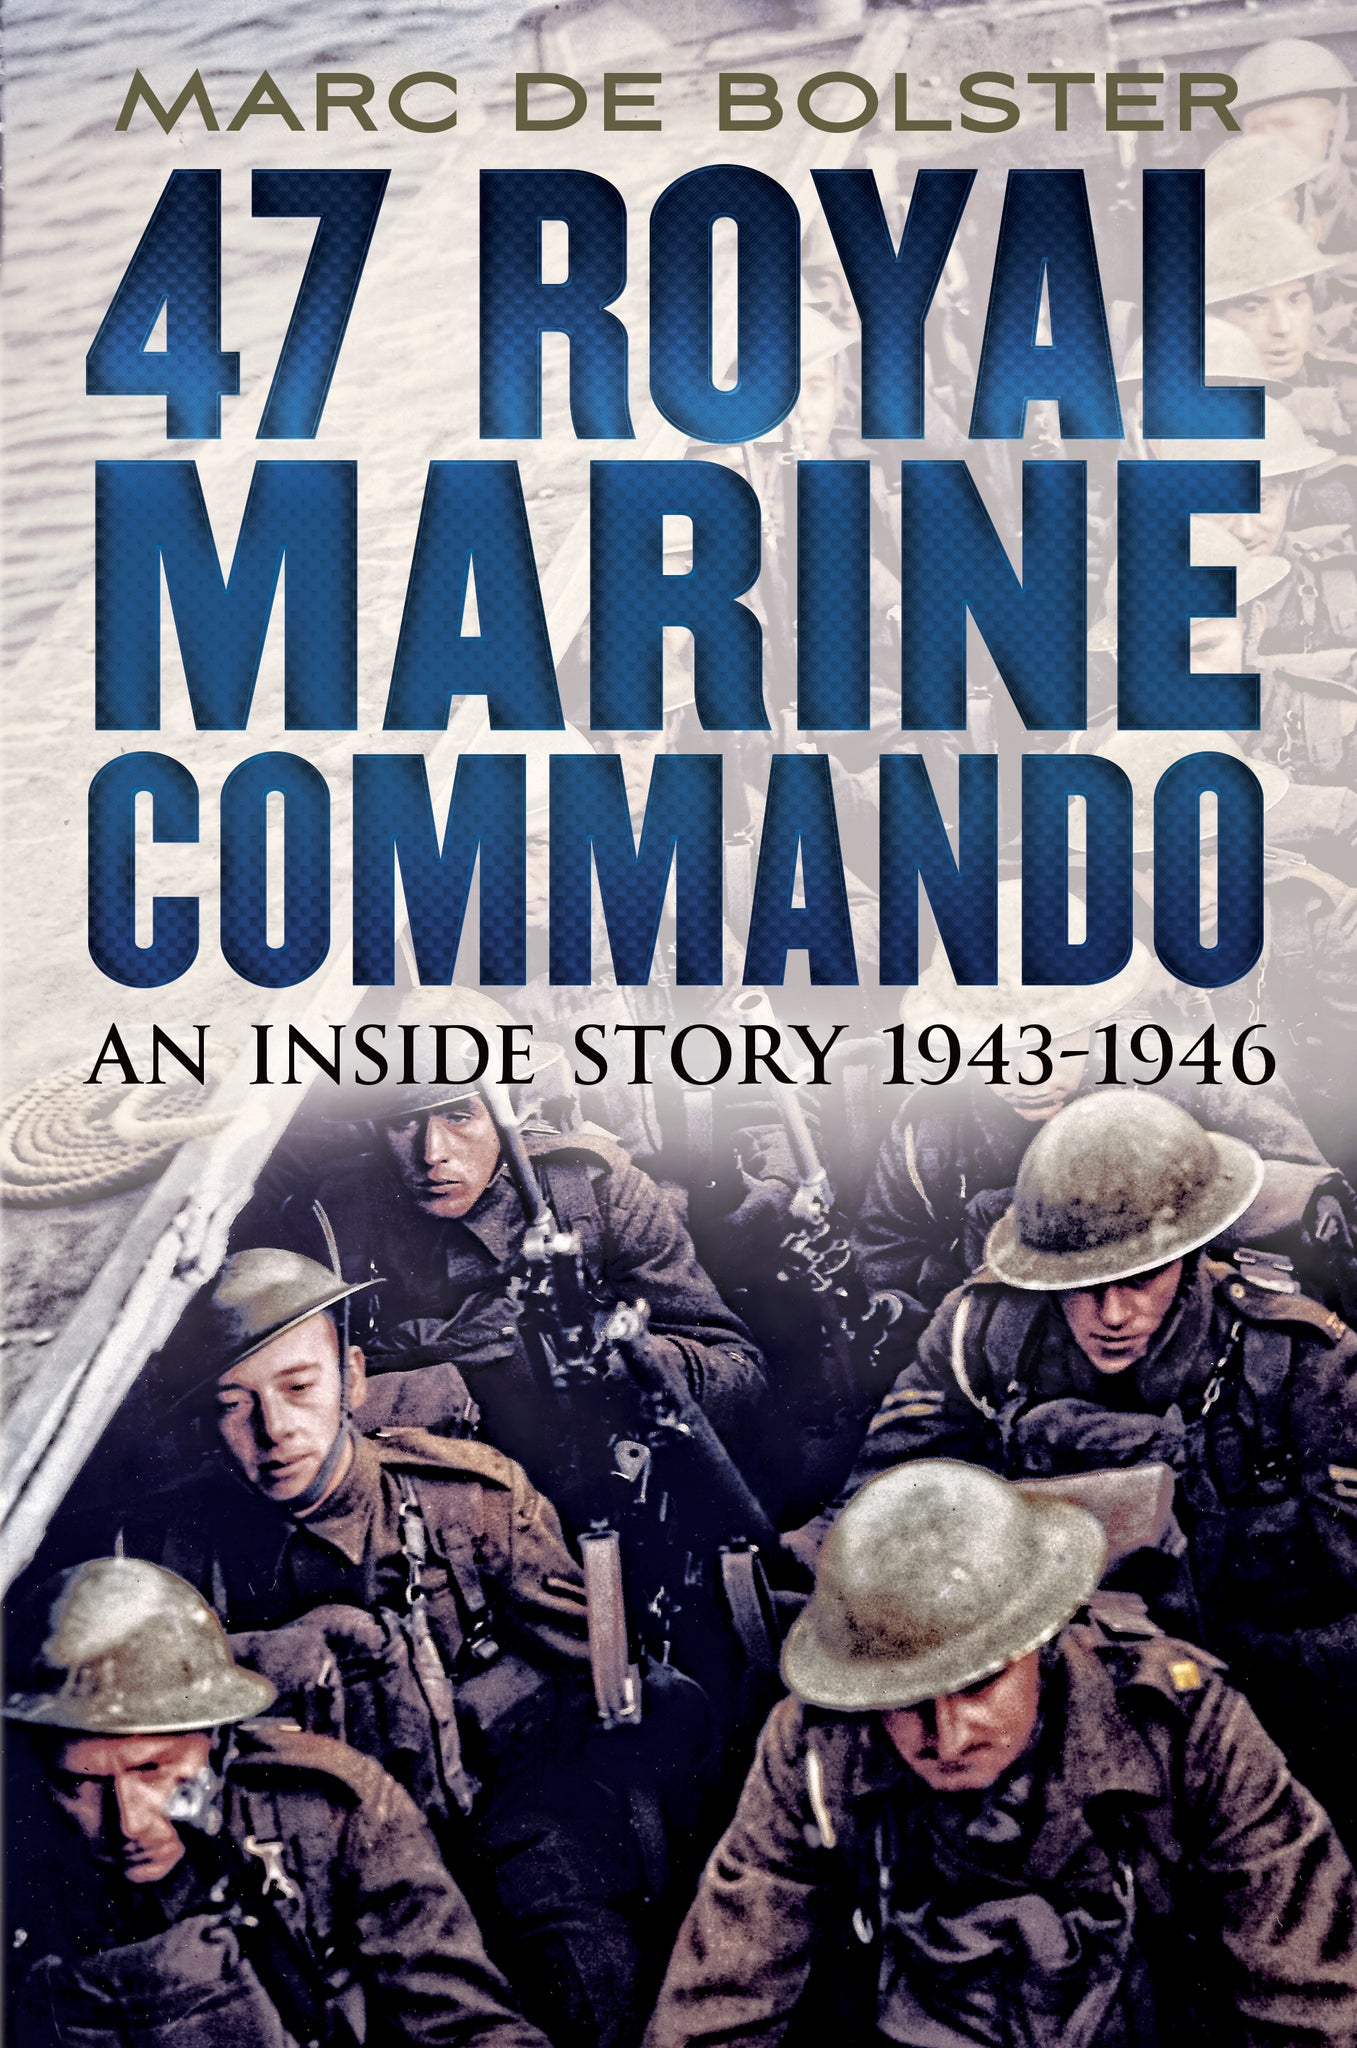 47 Royal Marine Commando: An Inside Story 1943-1946 - available now from Fonthill Media